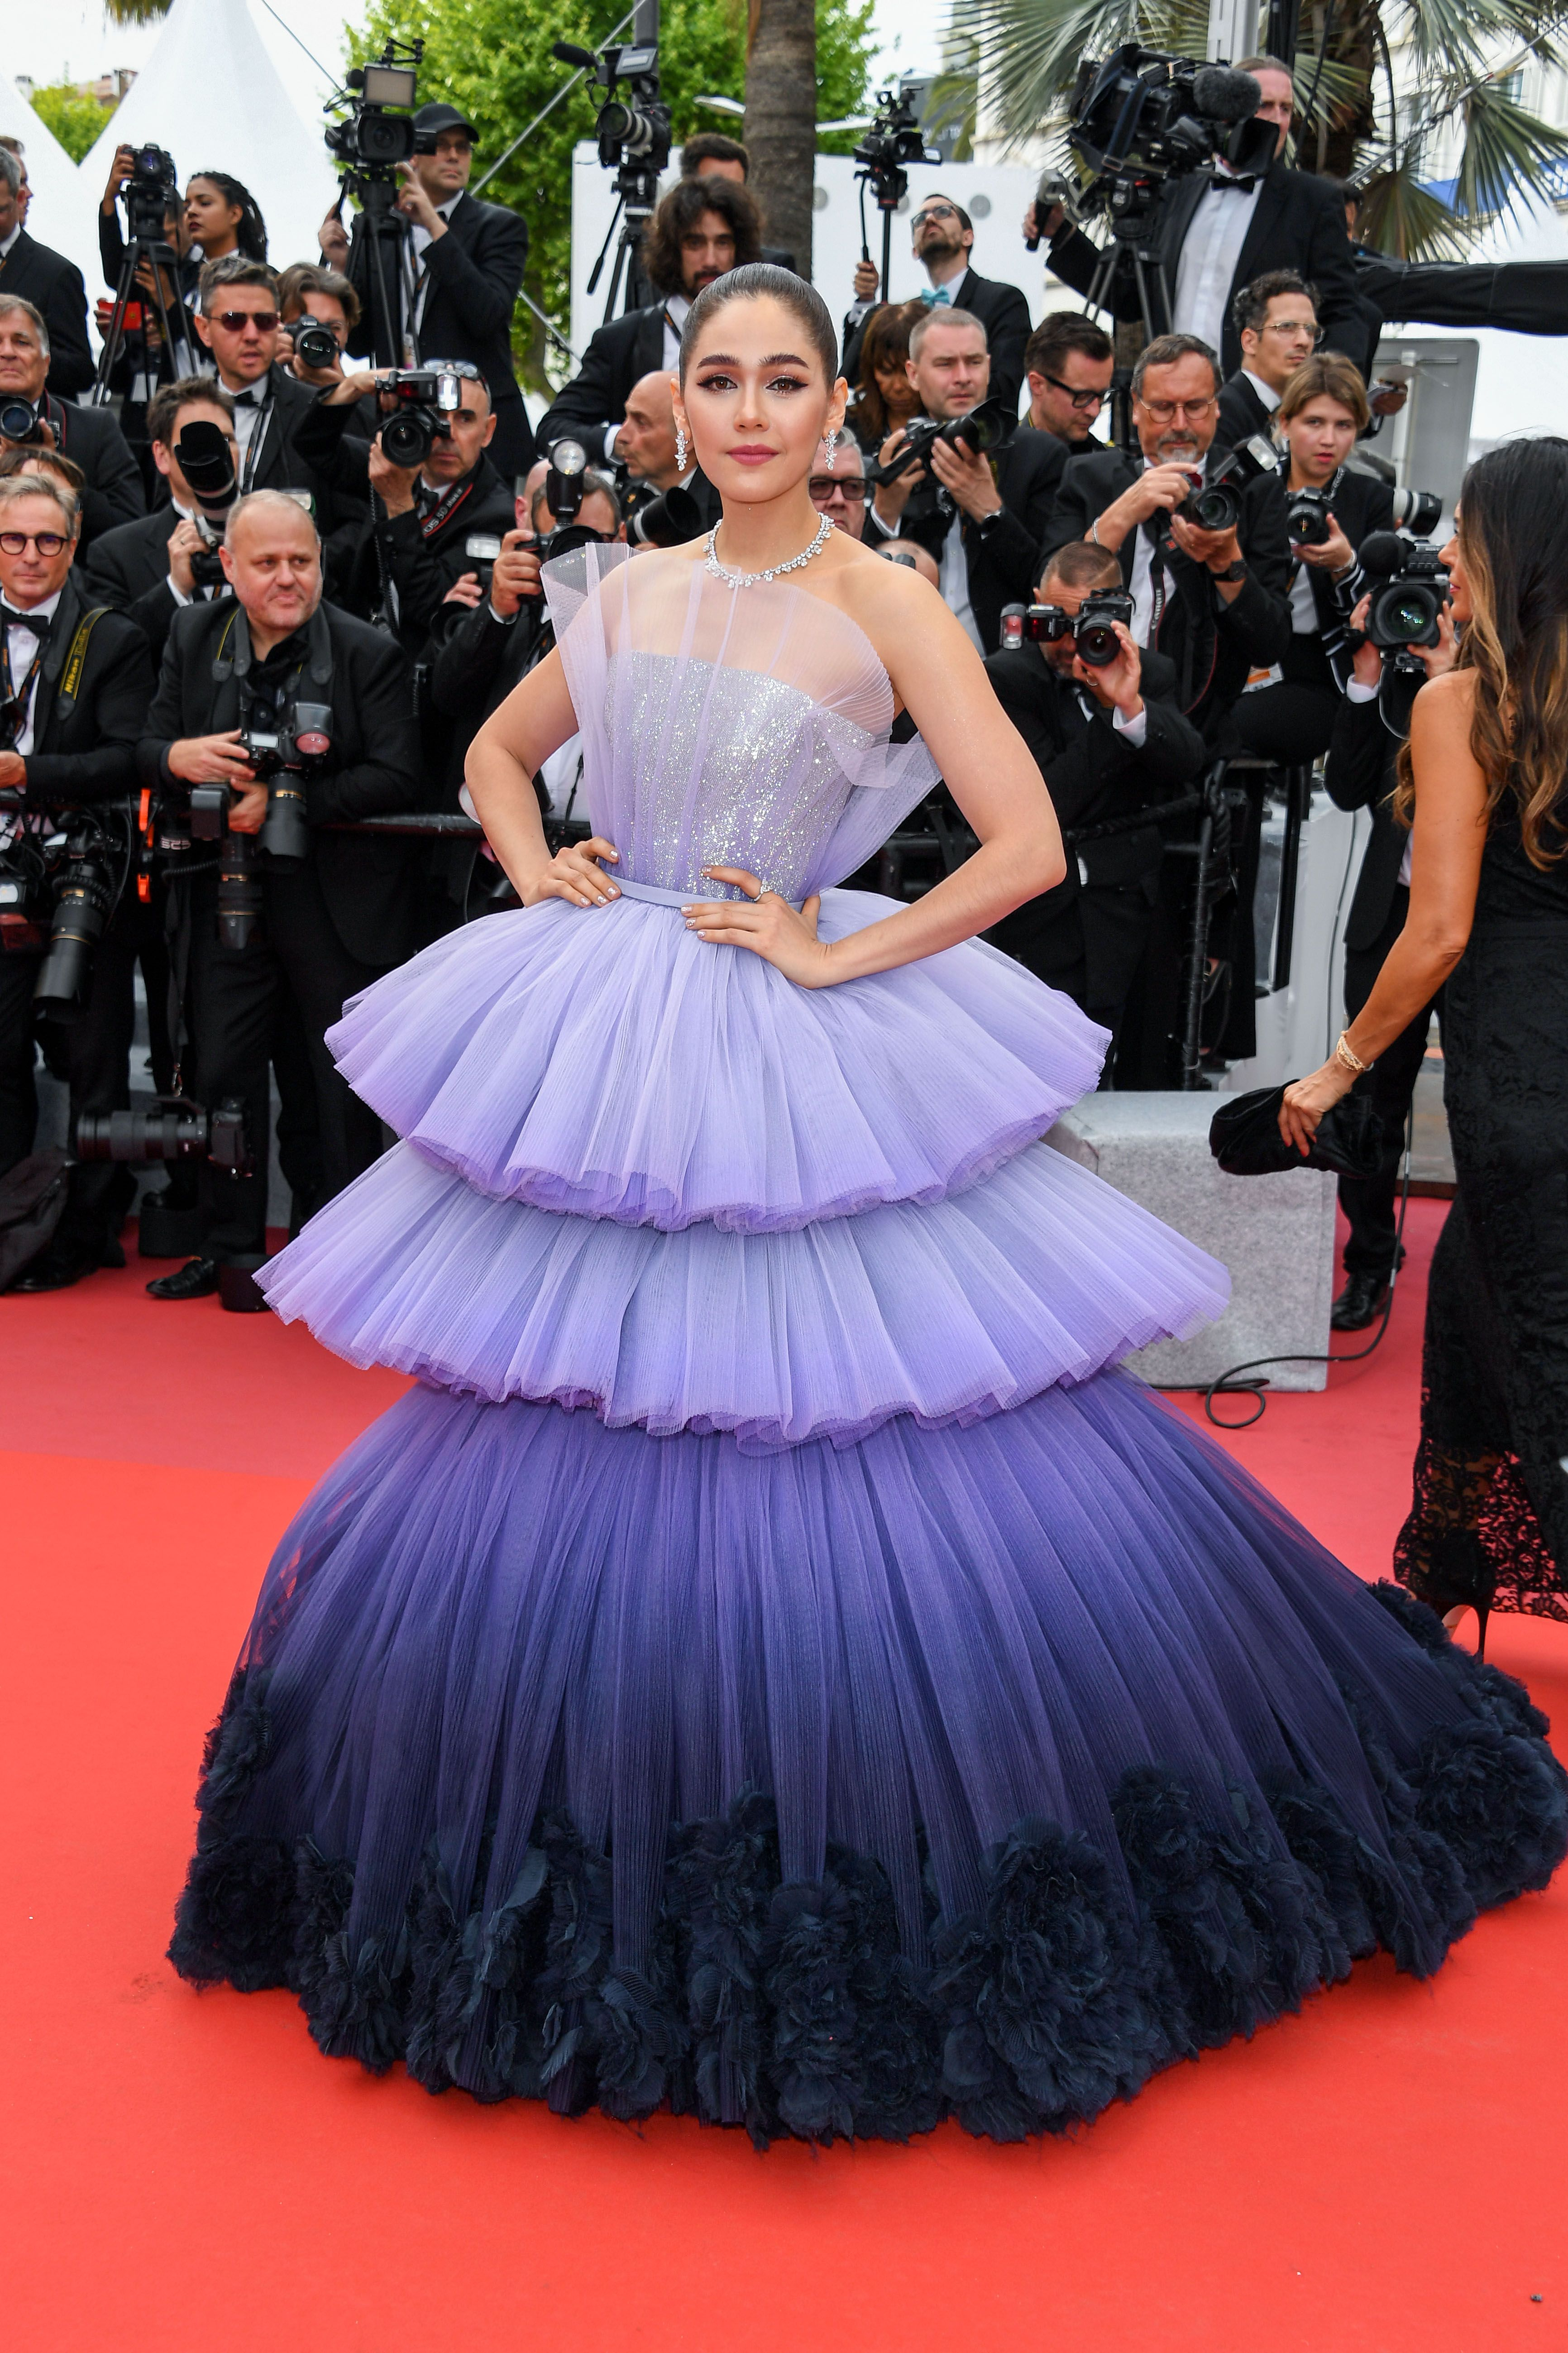 Araya A. Hargate In Chopard jewels at the opening ceremony of the Cannes Film Festival and premiere of The Dead Don't Die .